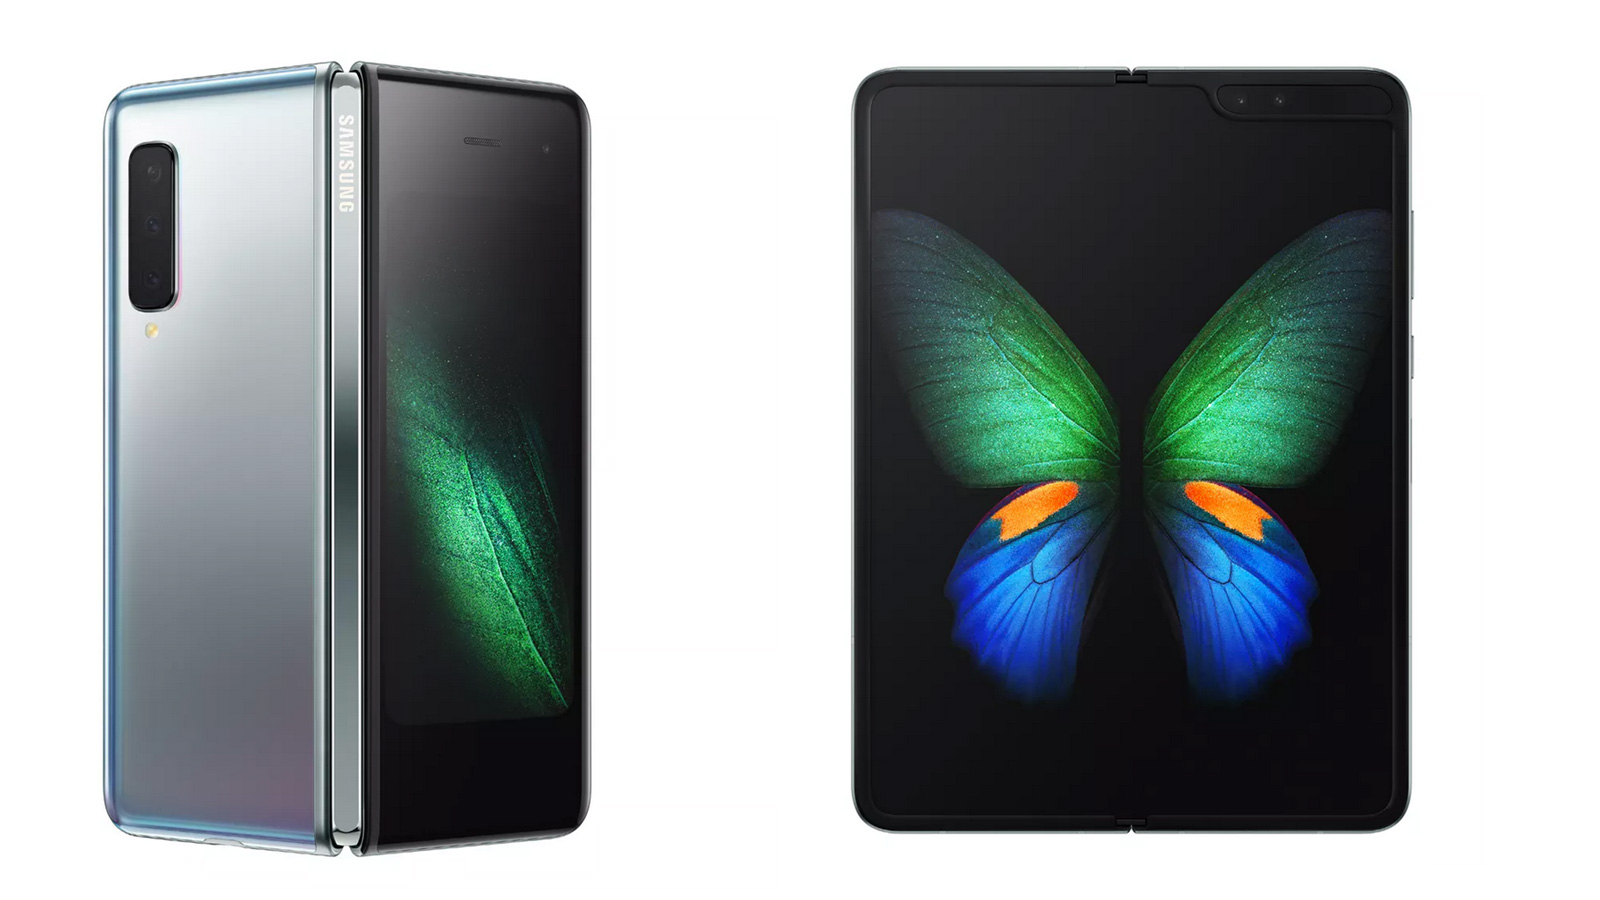 Samsung's foldable phone is called the Fold and will cost $1980